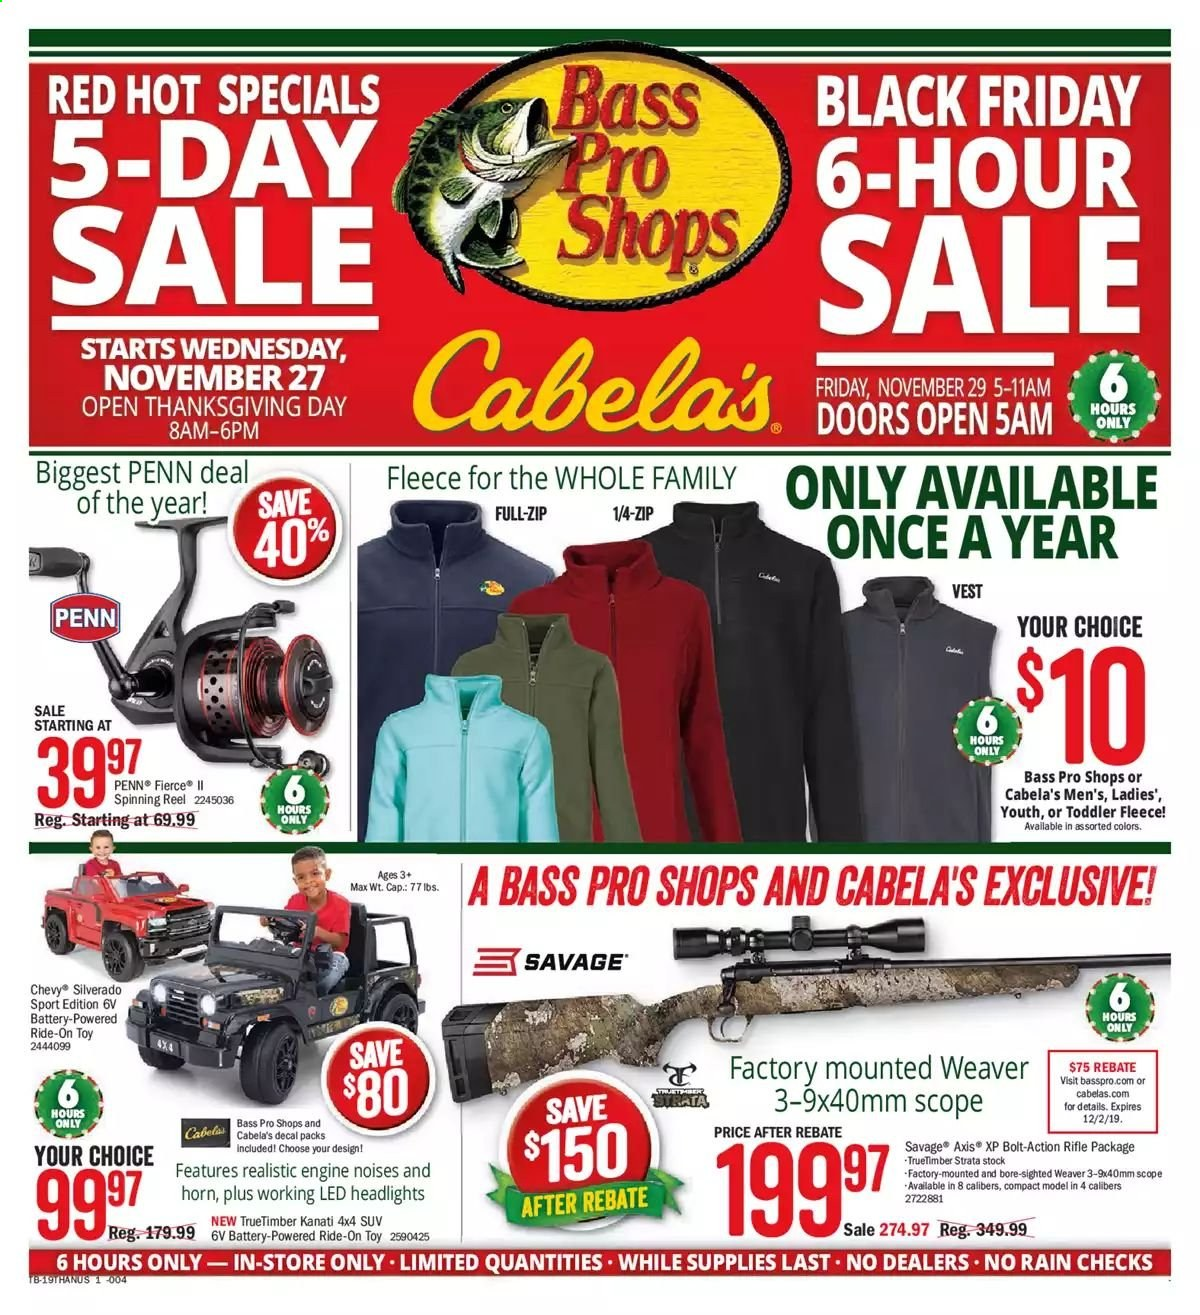 Bass Pro Shops Flyer - 11.29.2019 - 11.29.2019 - Sales products - vest, cap, Bass Pro, reel, spinning reel, savage, fishing rod, scope, Penn. Page 1.